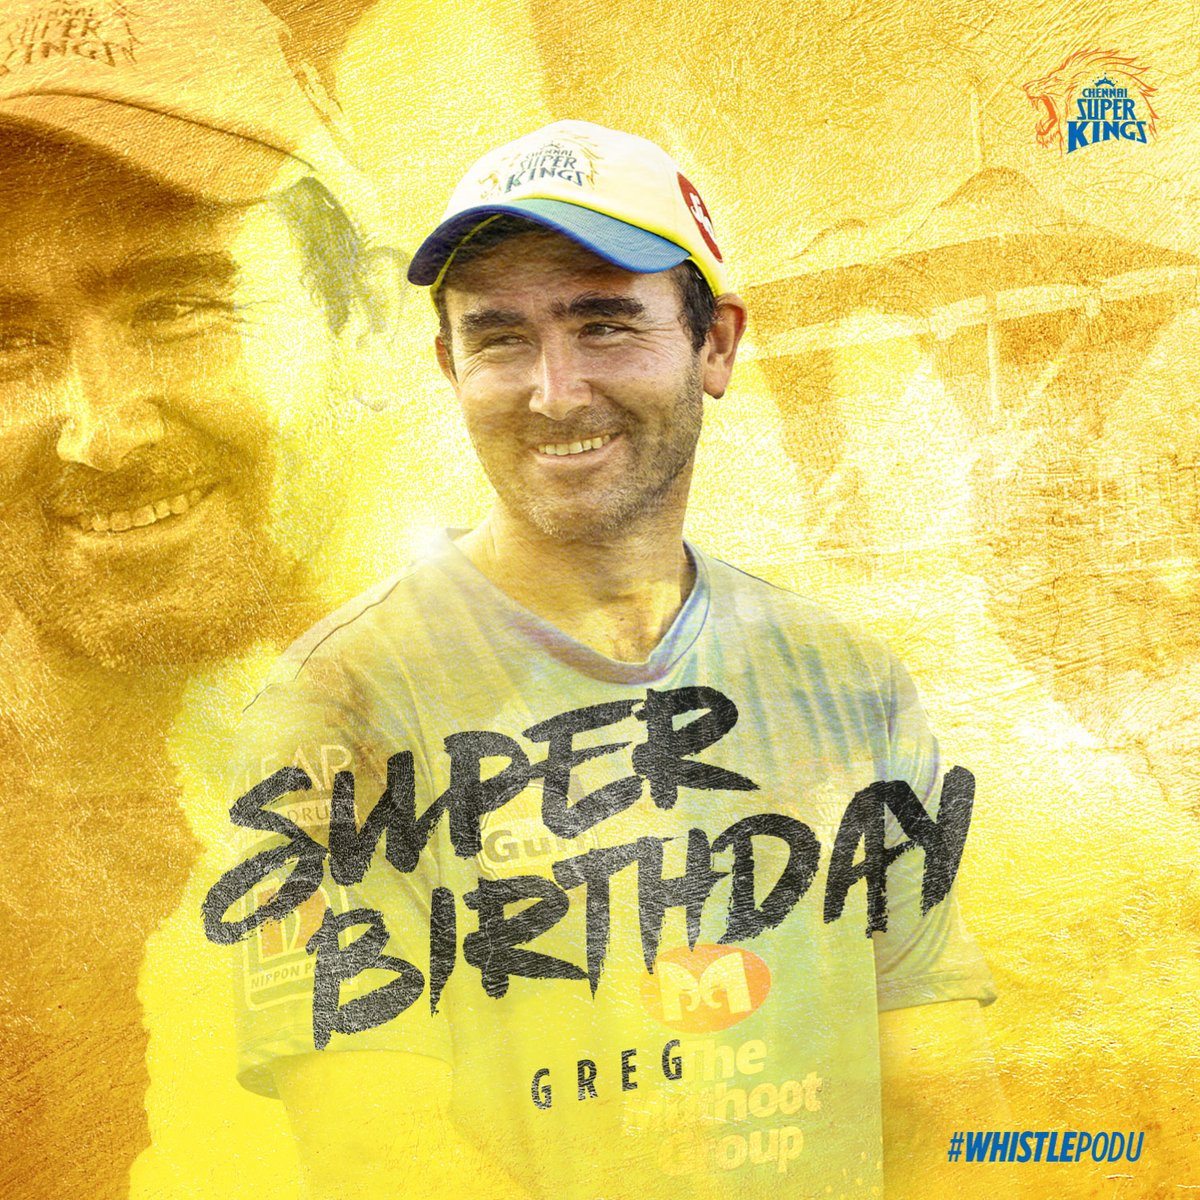 It's a kingly feat to keep a whole pride of 30+ year olds super fit. But with his surname it was just meant to be. Super Birthday to our beloved trainer Gregory King. #WhistlePodu 🦁💛